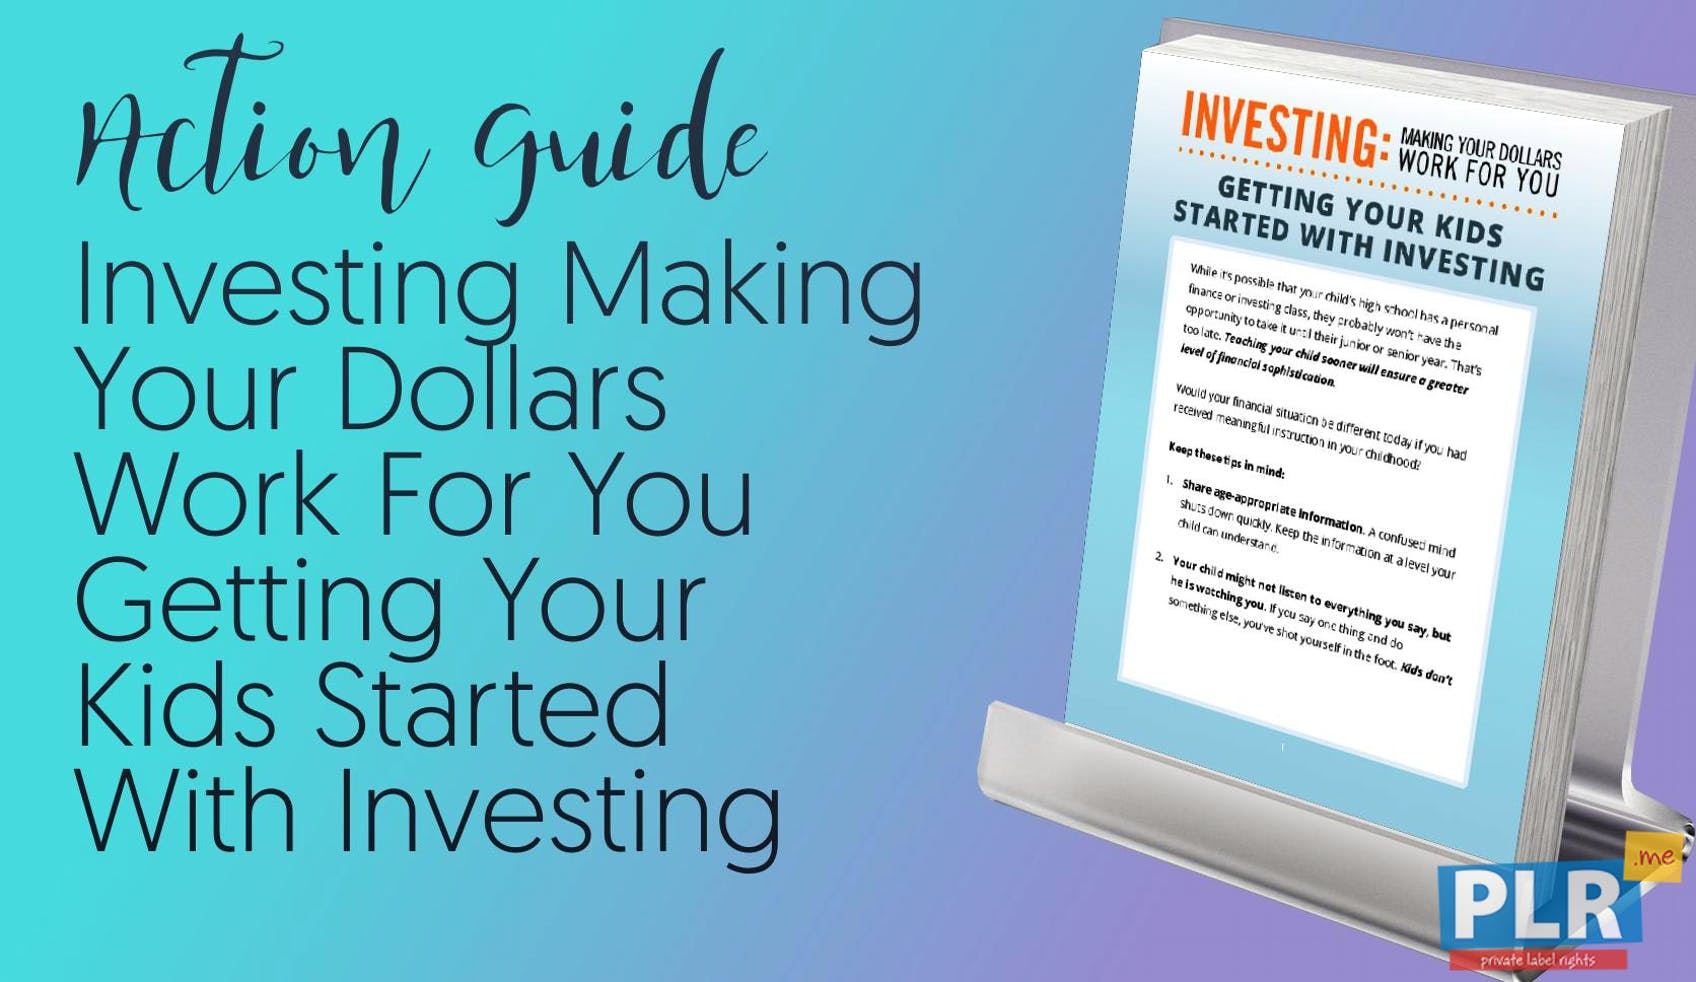 Investing Making Your Dollars Work For You Getting Your Kids Started With Investing